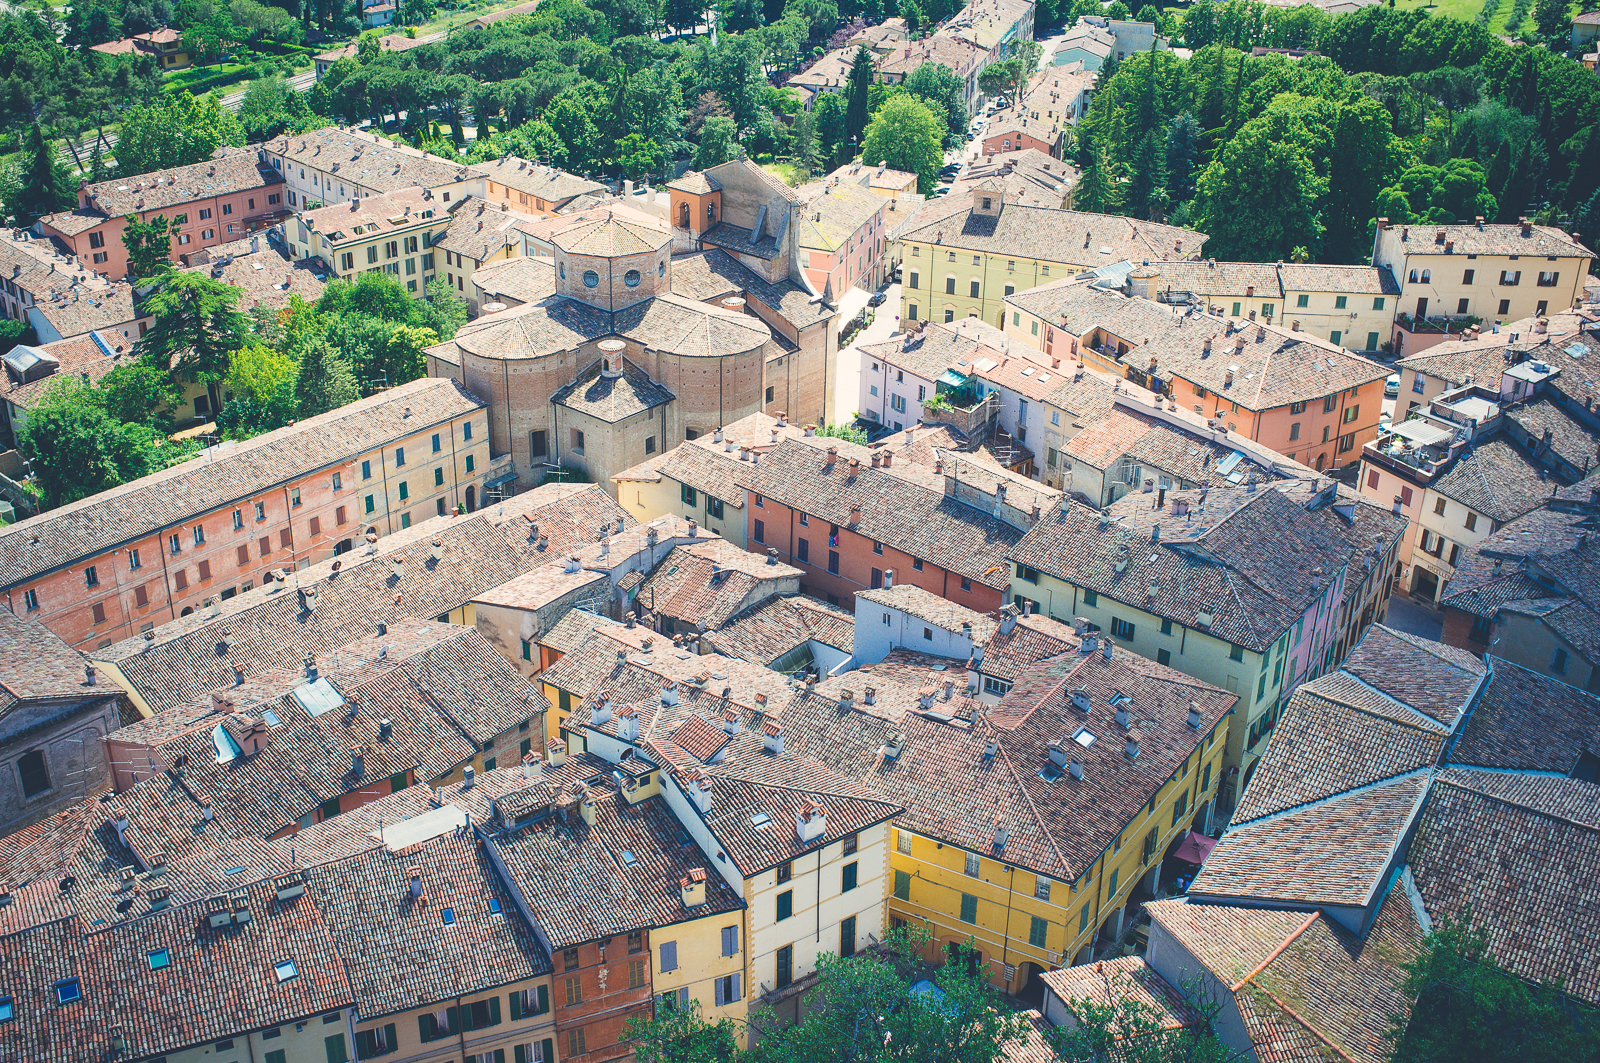 Brisighella as seen from the clock tower